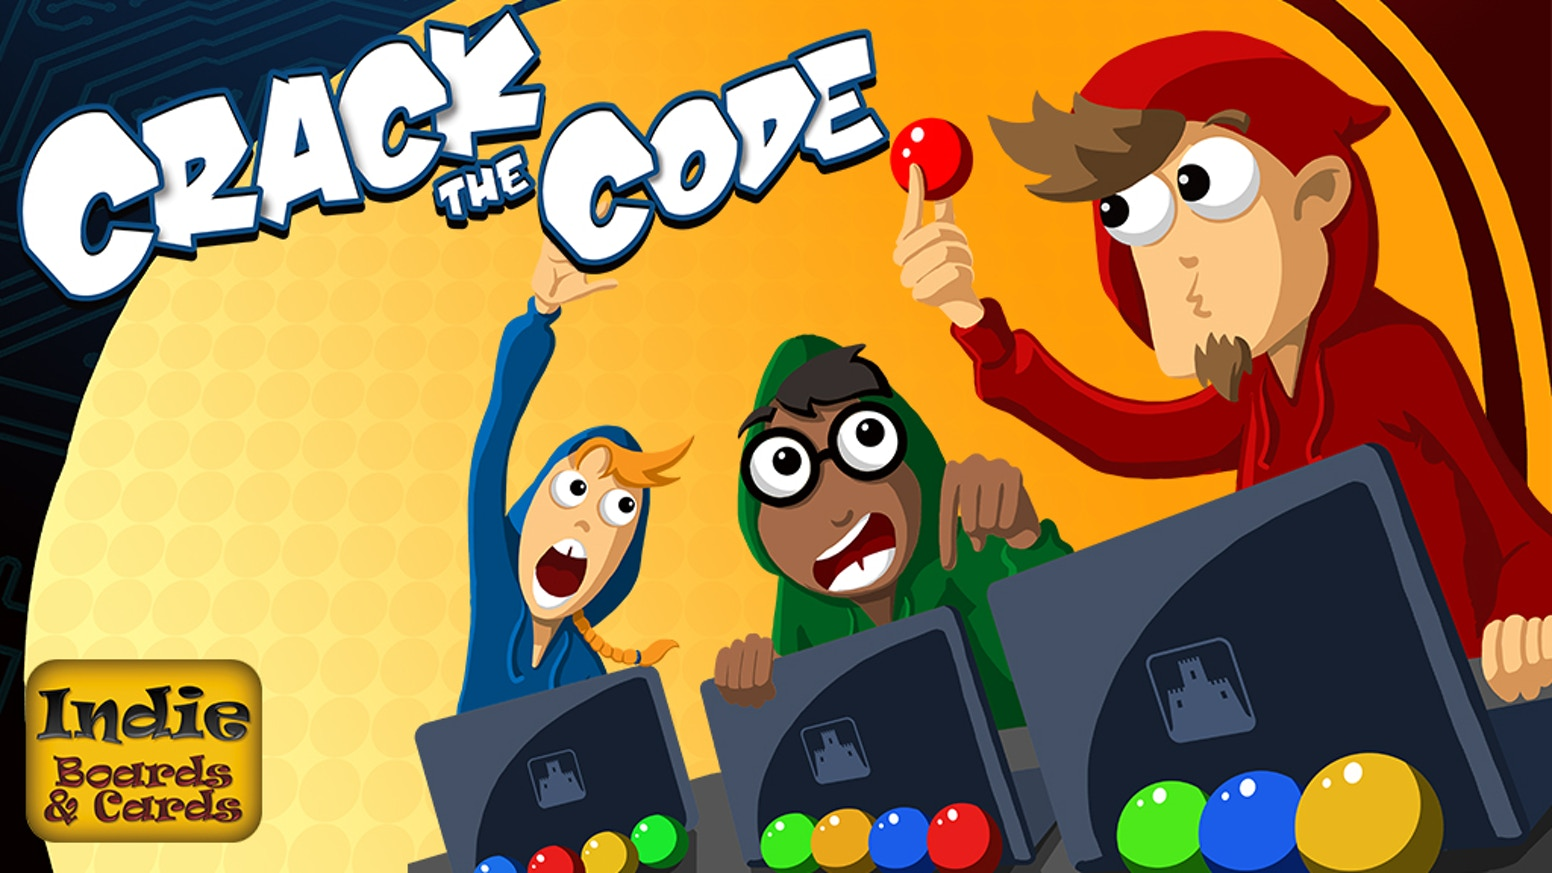 Your network has been compromised! It is up to you and your elite team of hackers to restore your program in this co-op puzzle game.